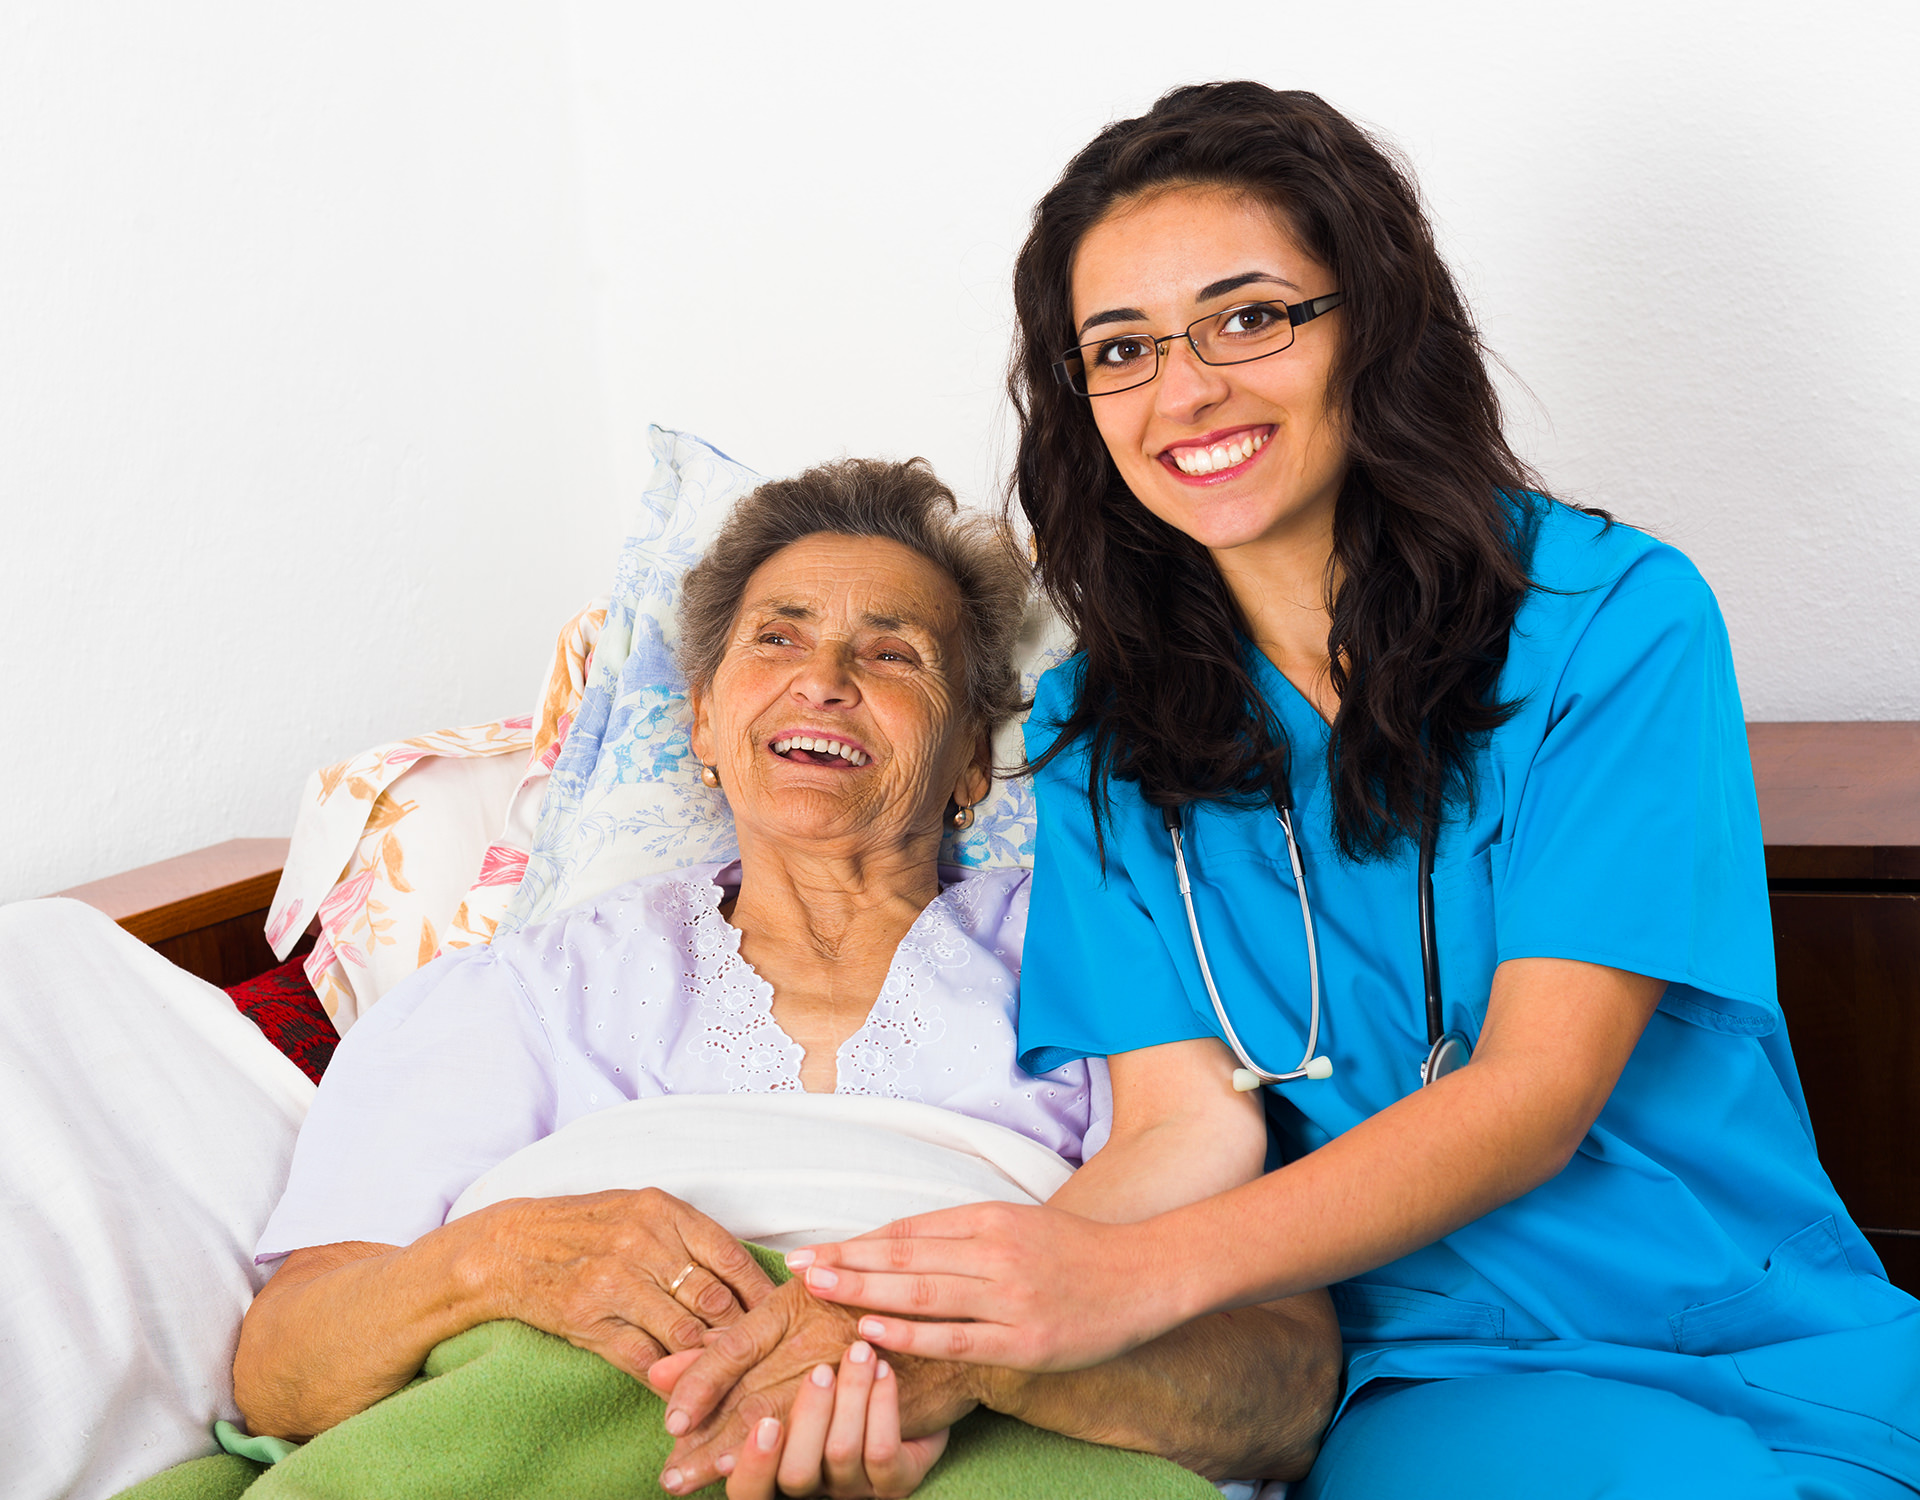 Dedicated Home Care services in City name, State name